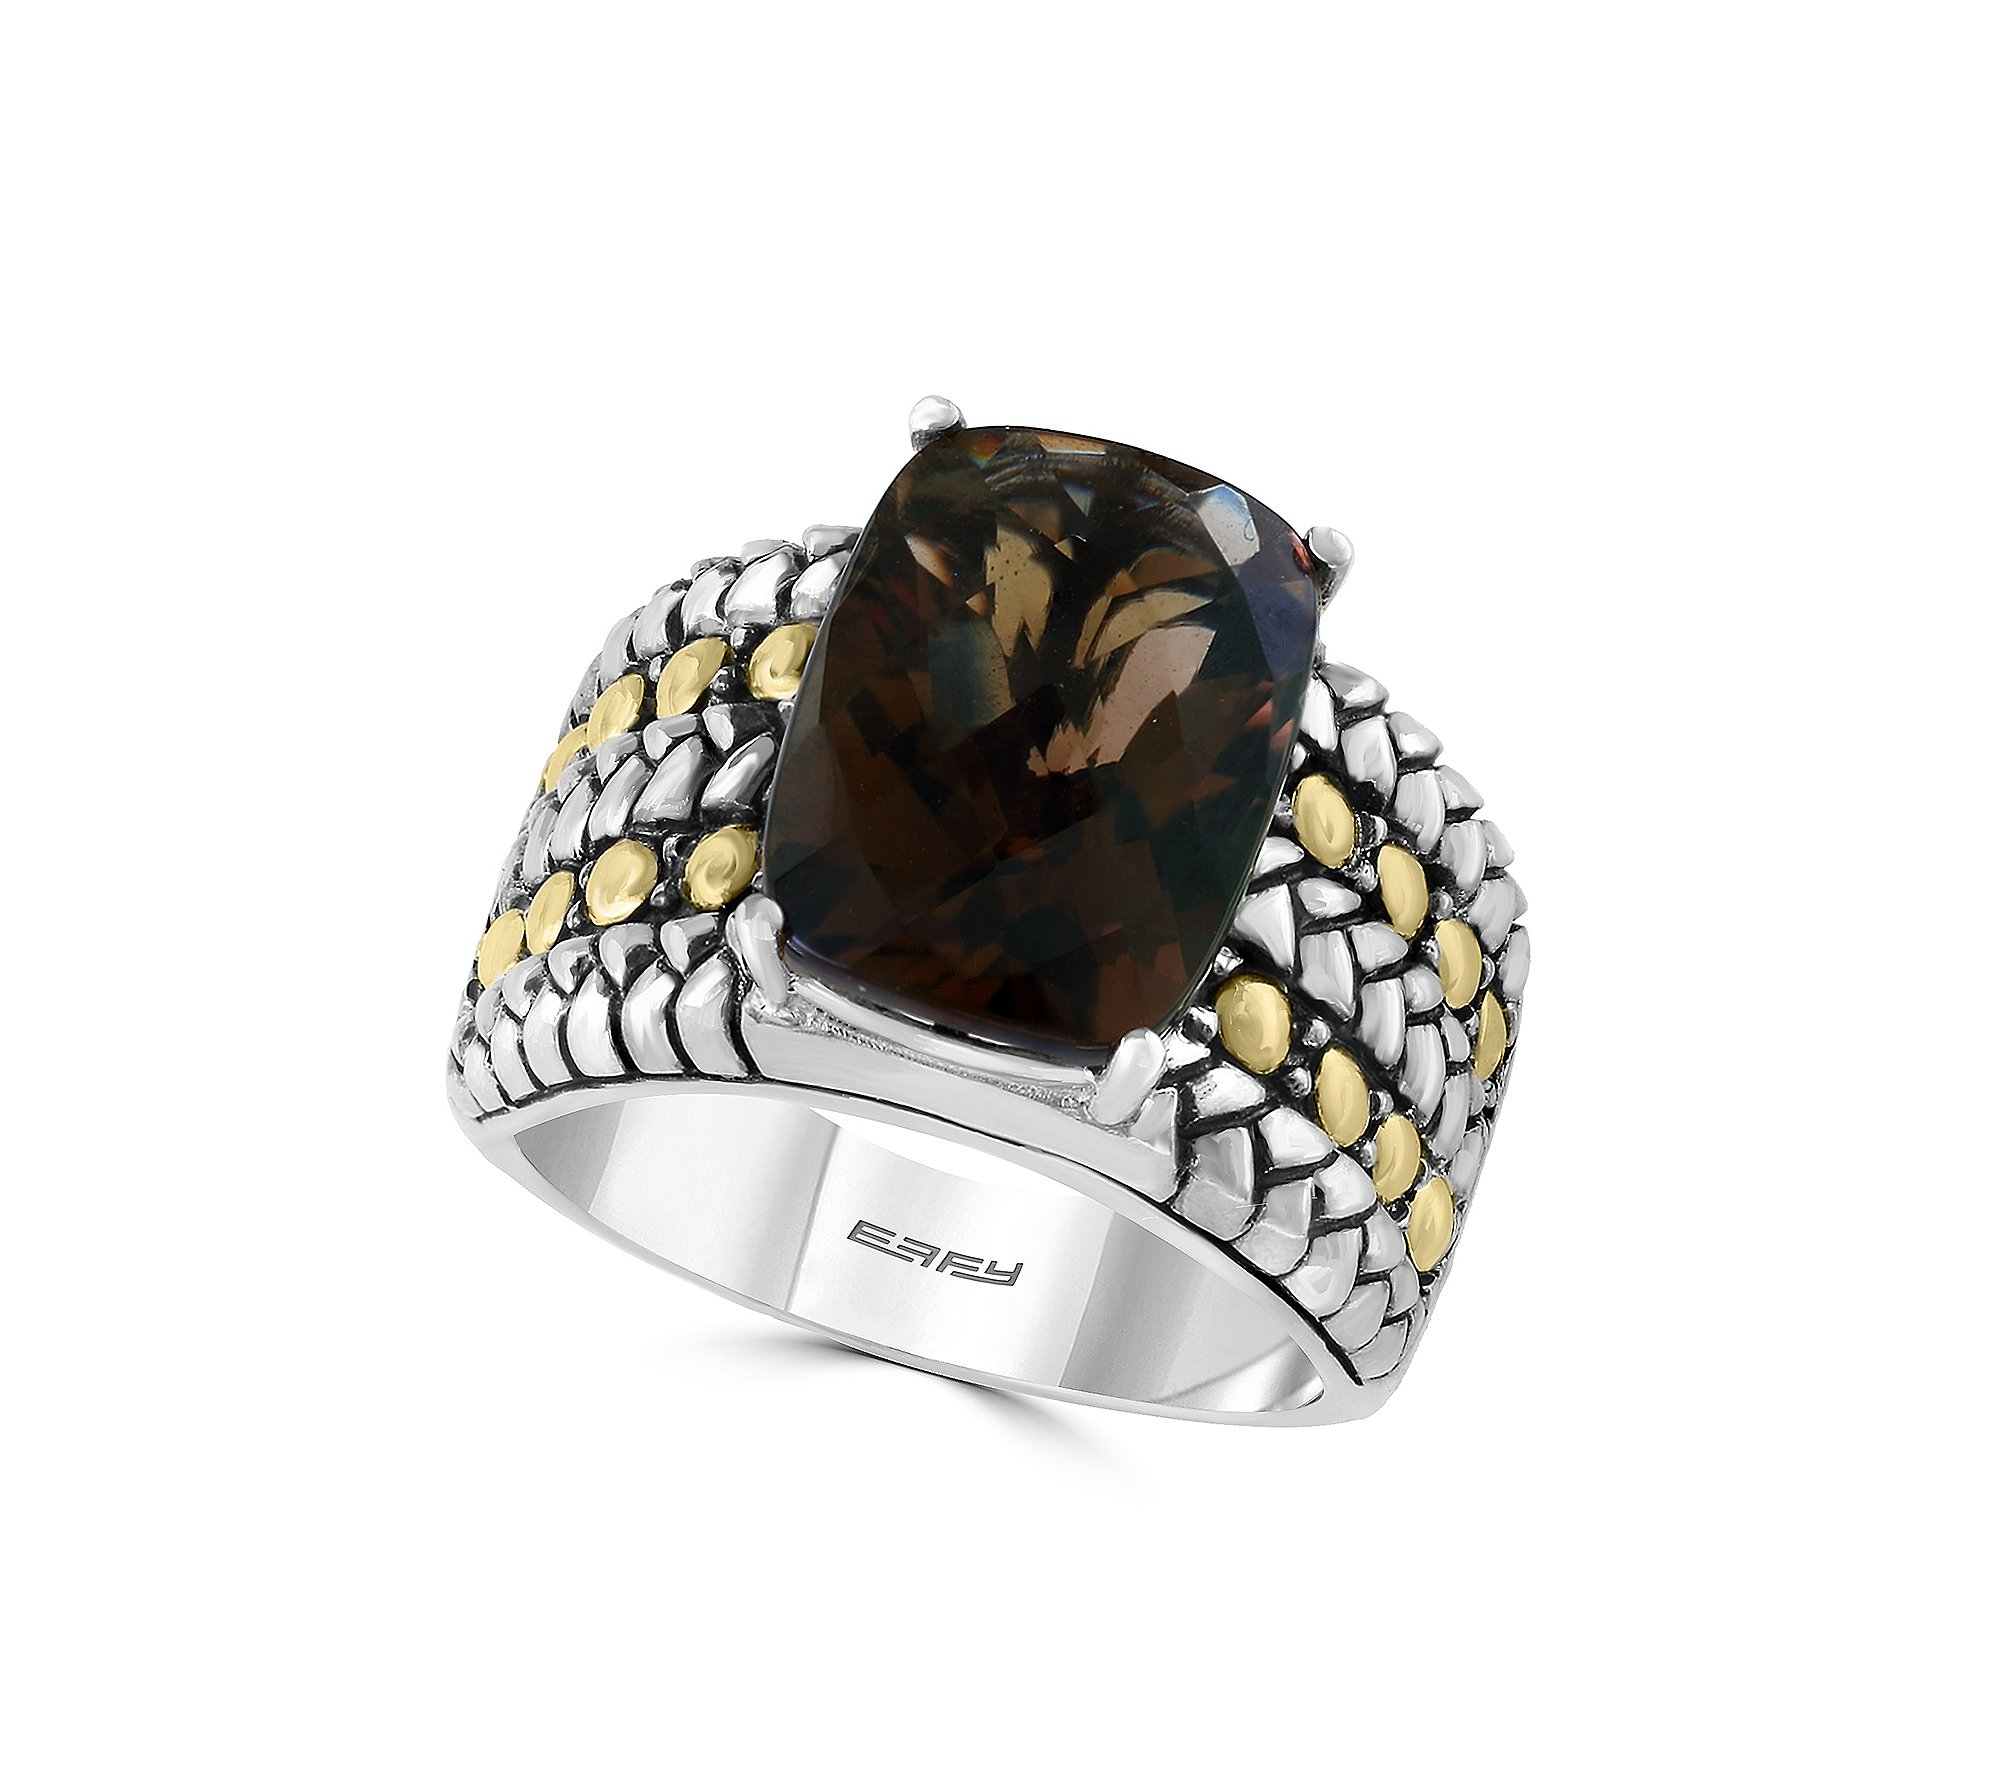 Effy 925 Collection Smoky Quartz Sterling Silver Ring with 18K Yellow Gold Accents